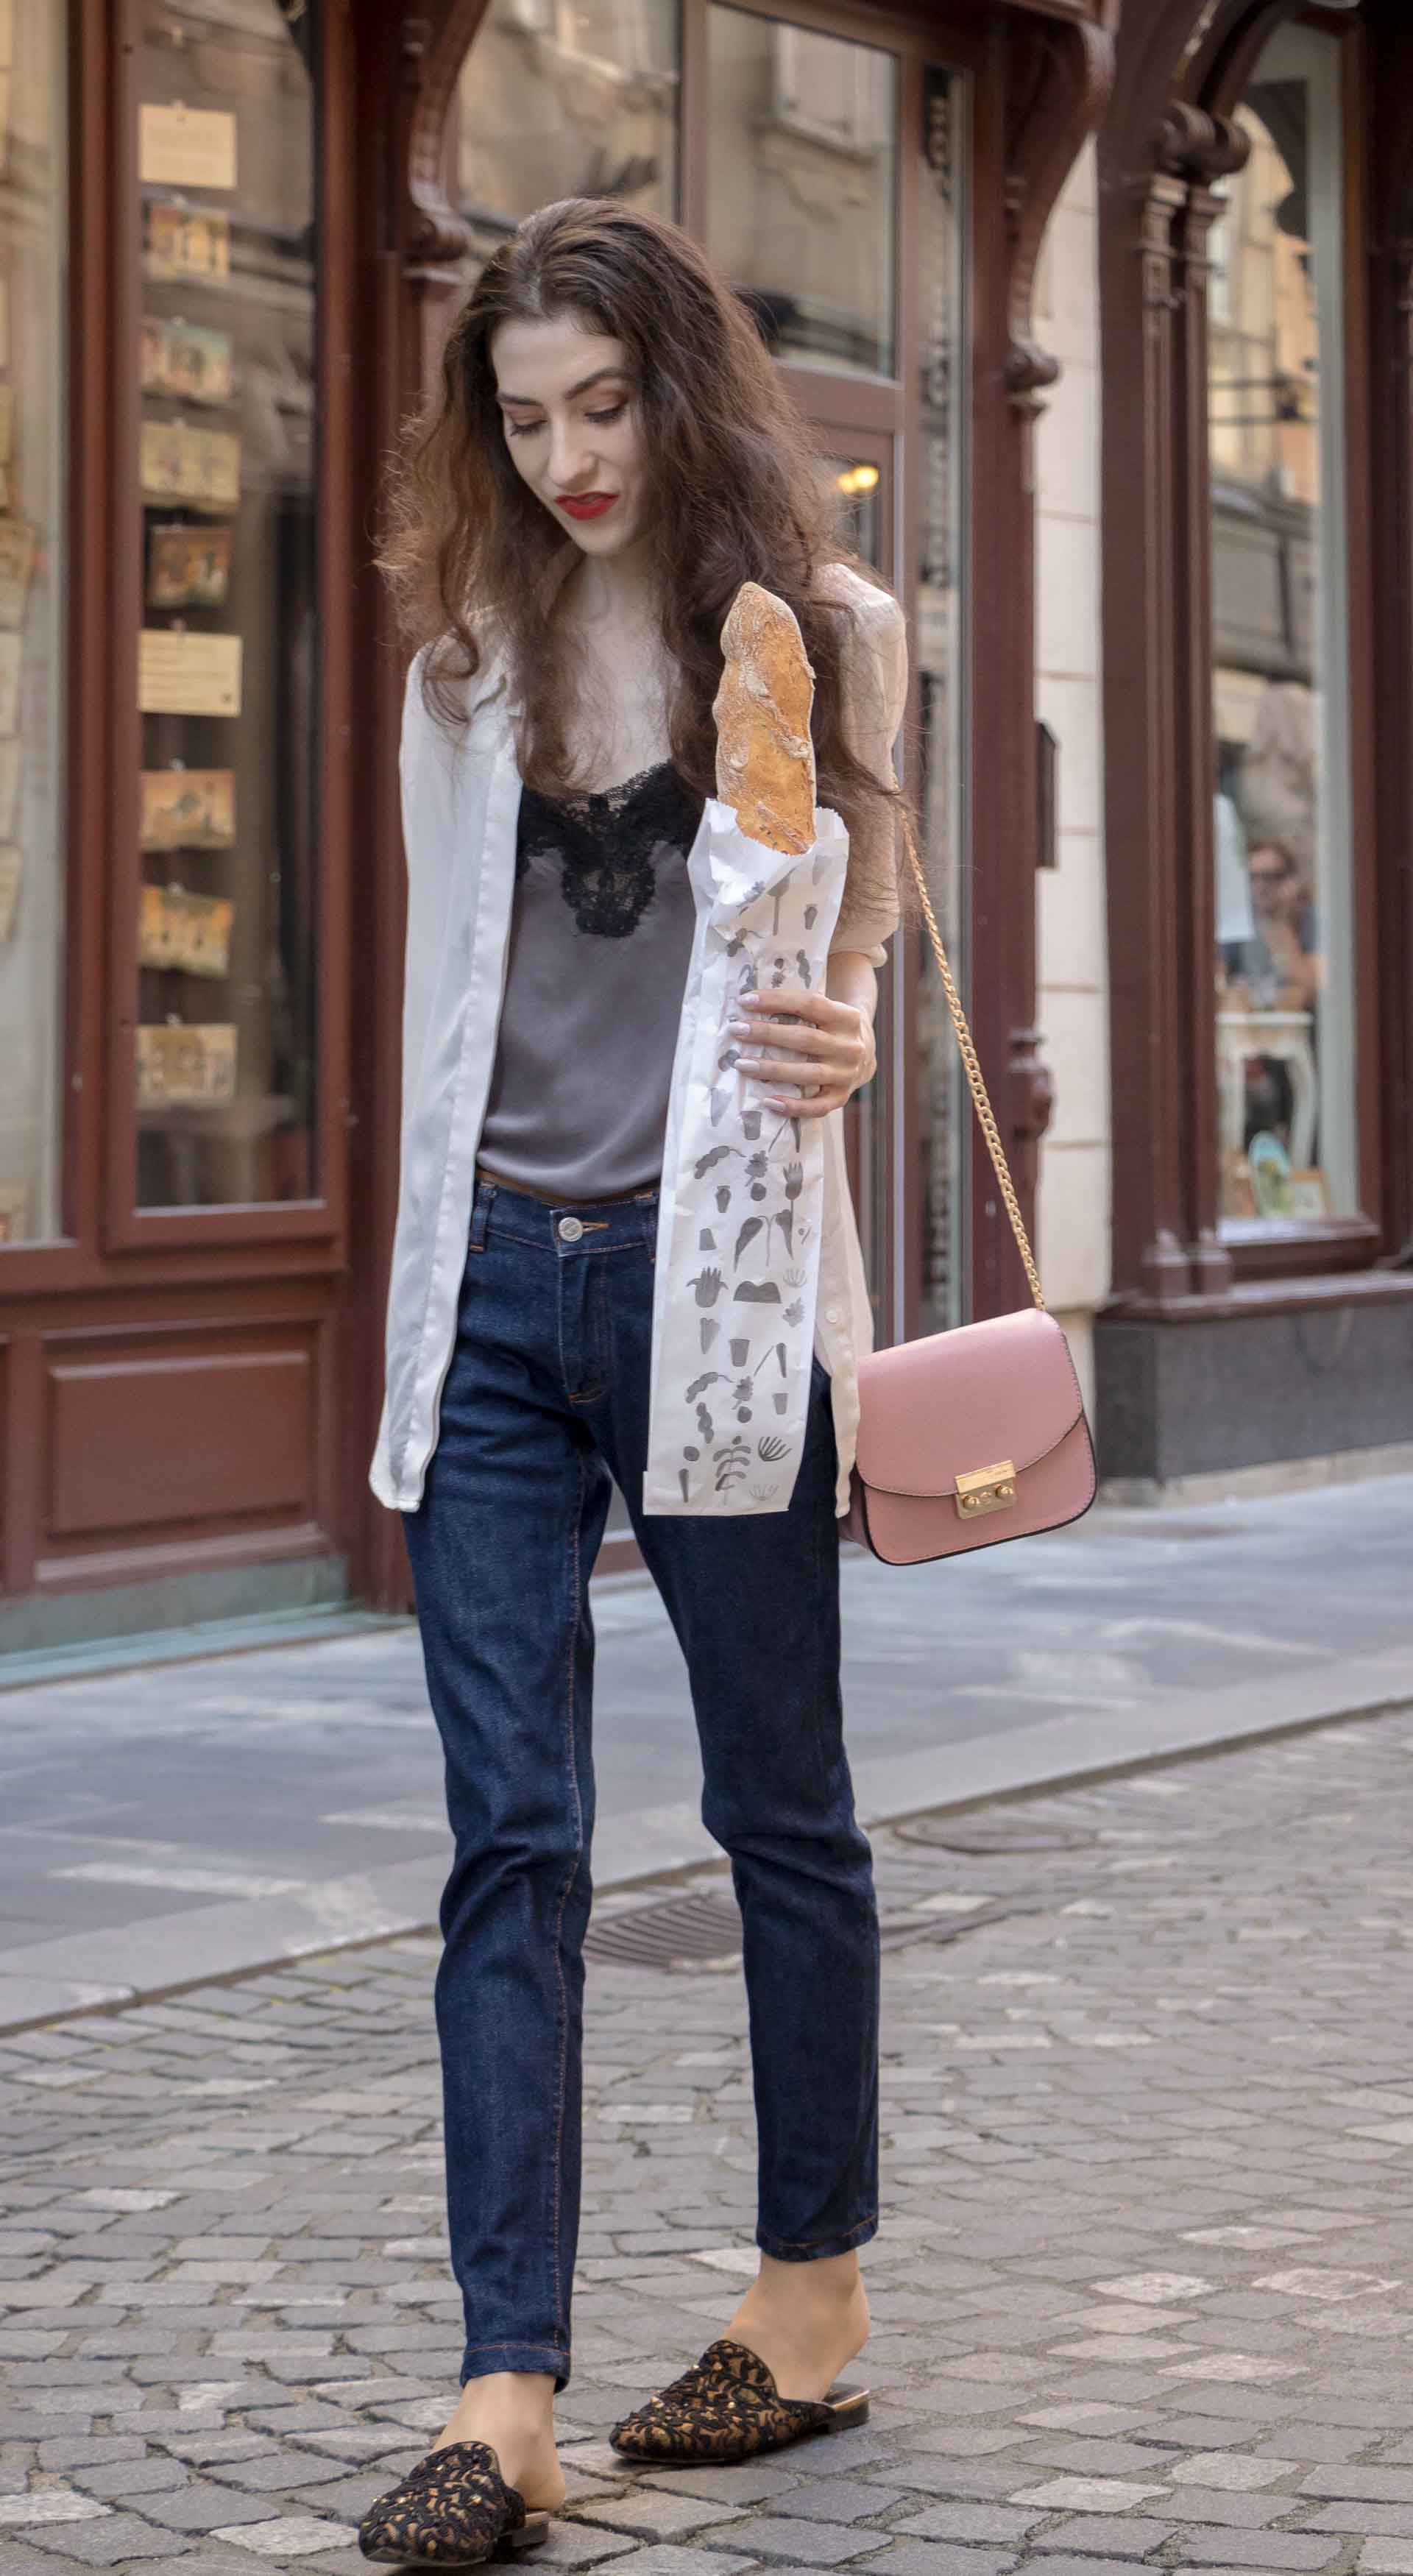 Fashion Blogger Veronika Lipar of Brunette from Wall Street wearing white organza shirt with transparent back from Sandro Paris, grey silk slip top, A.P.C. dark denim jeans, mules, pink Furla shoulder bag, on her way from the bakery